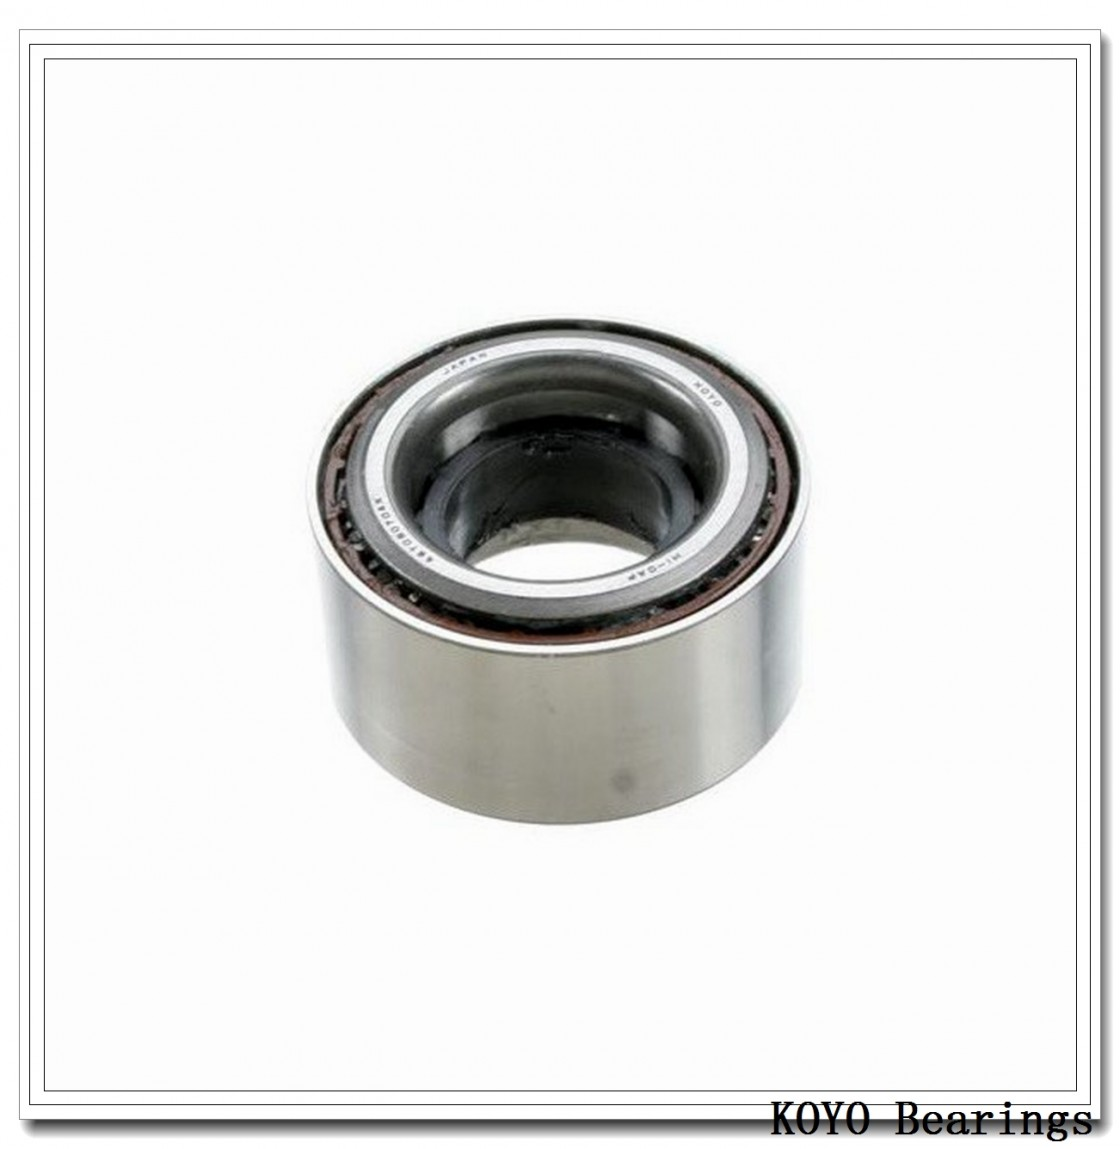 KOYO 6312-2RS deep groove ball bearings